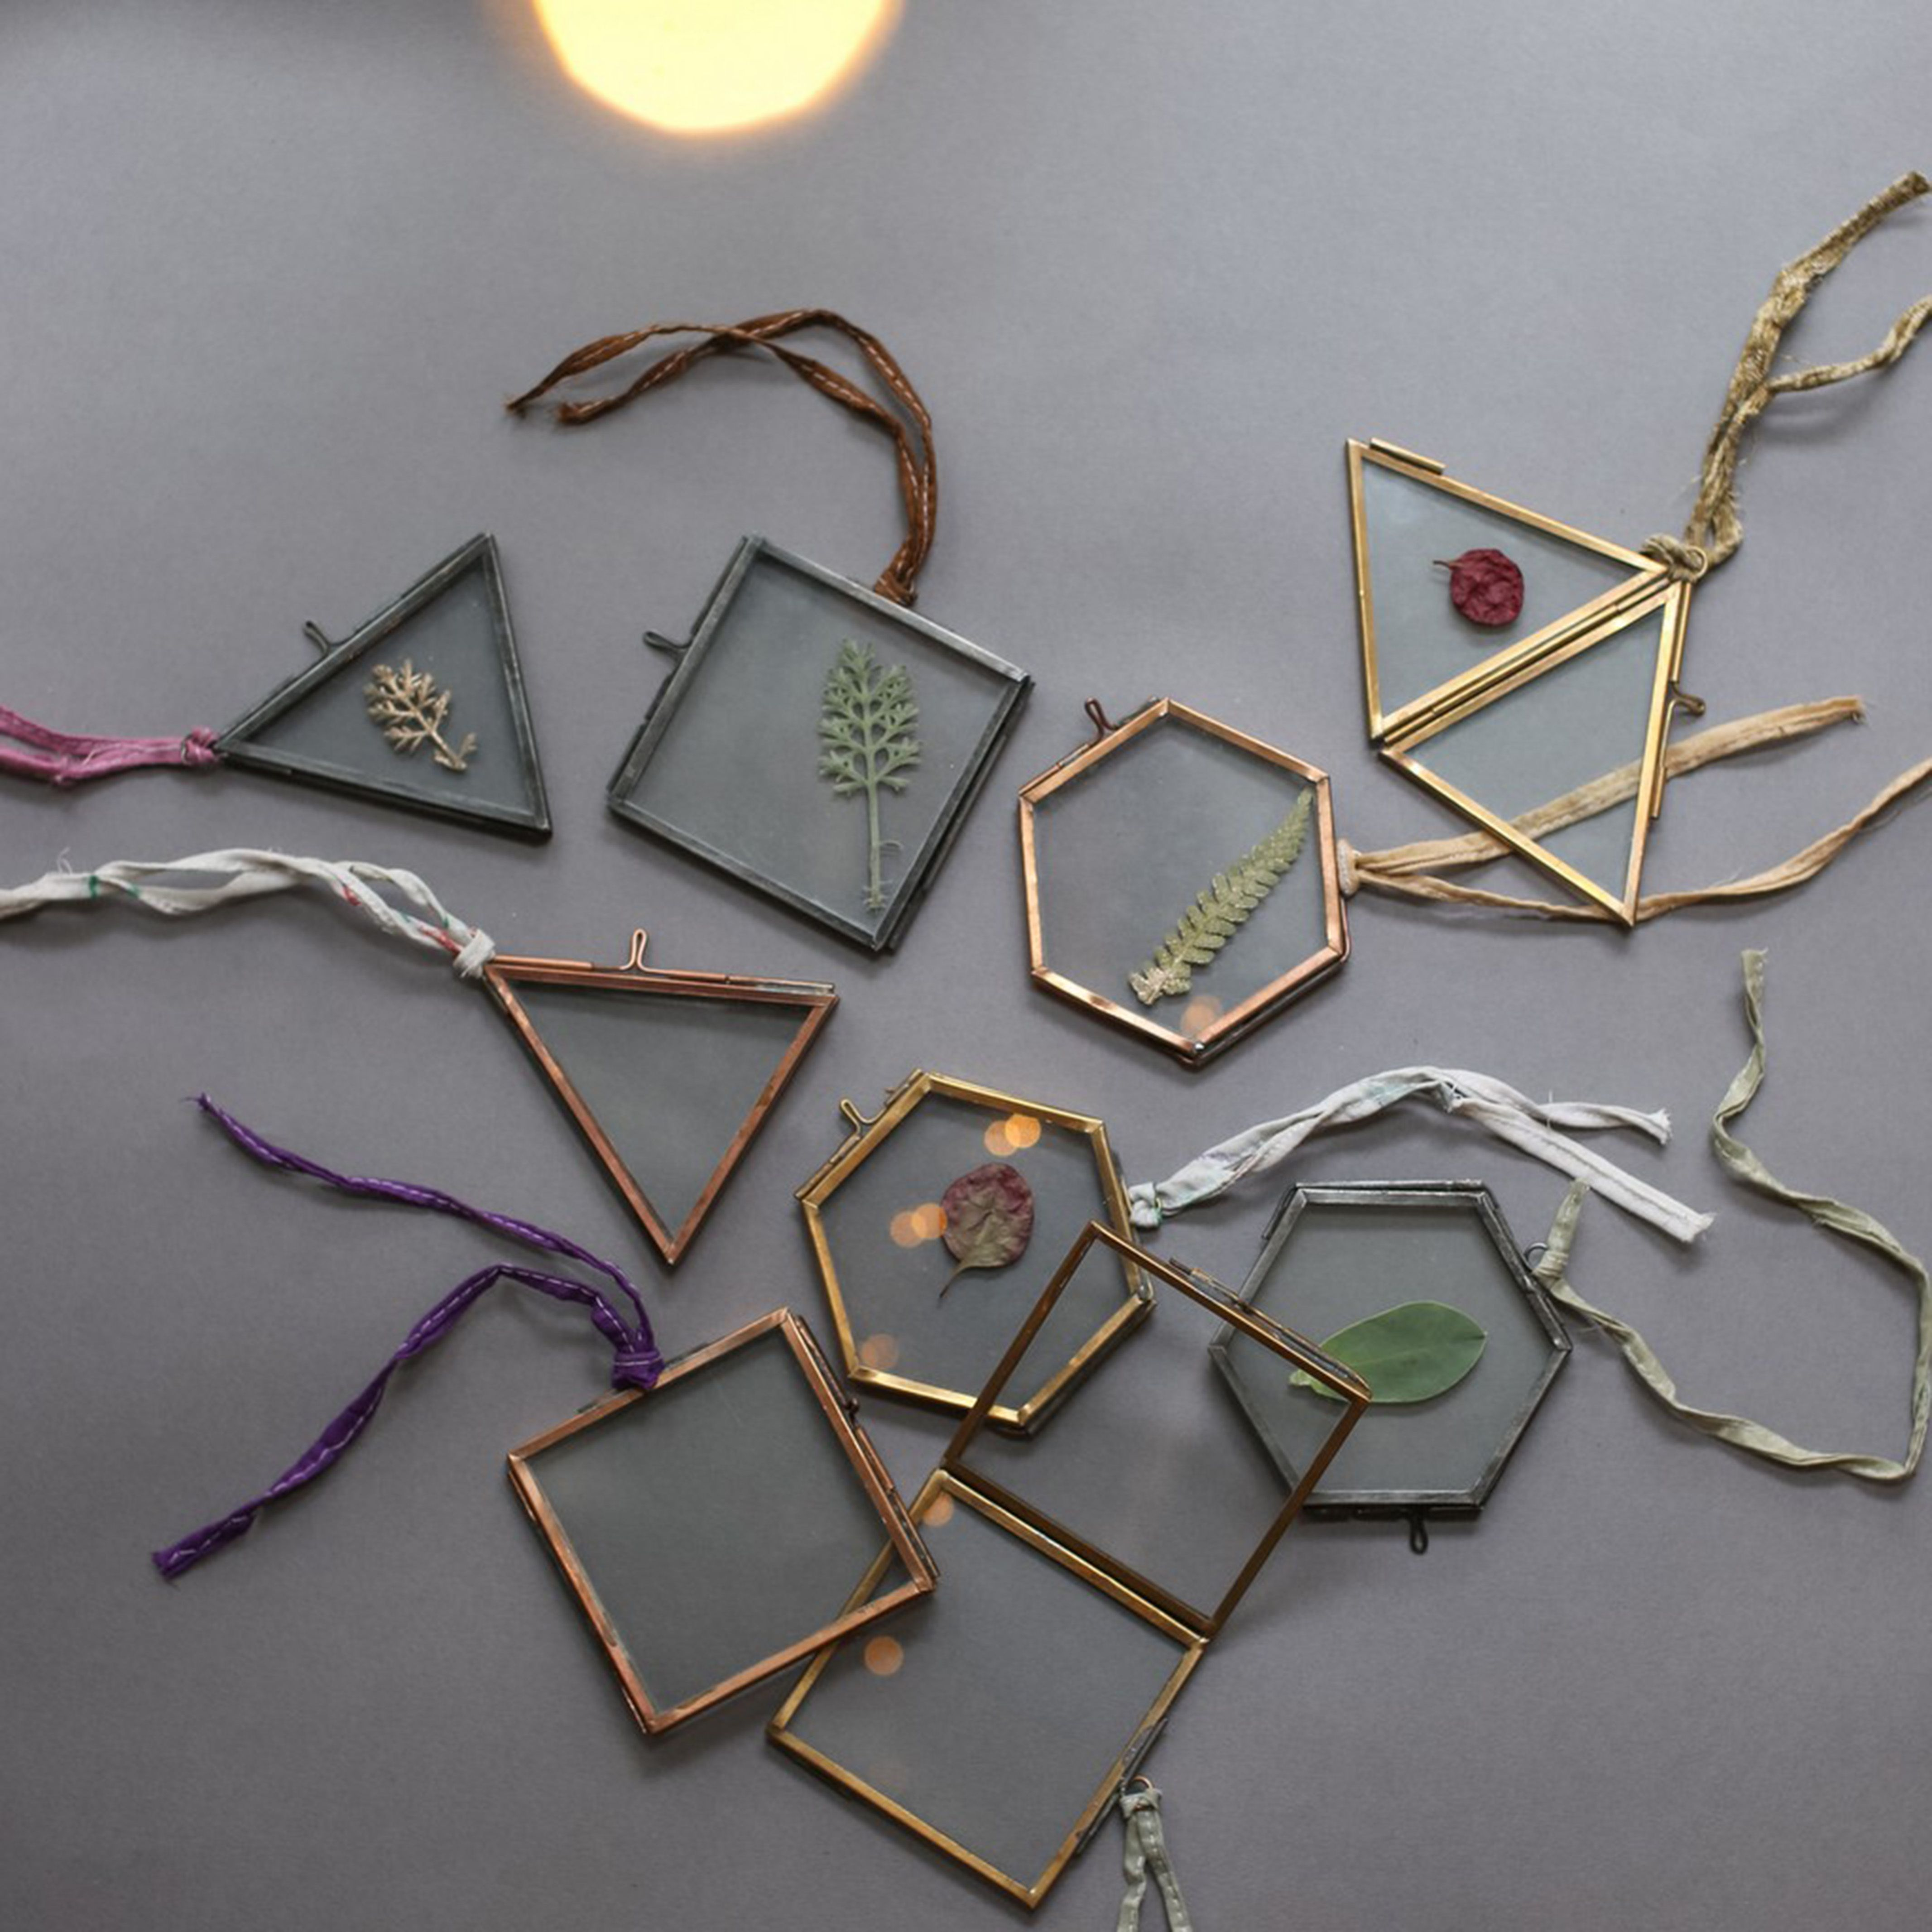 fbcc00860bd8 27 hygge-inspired items for your home